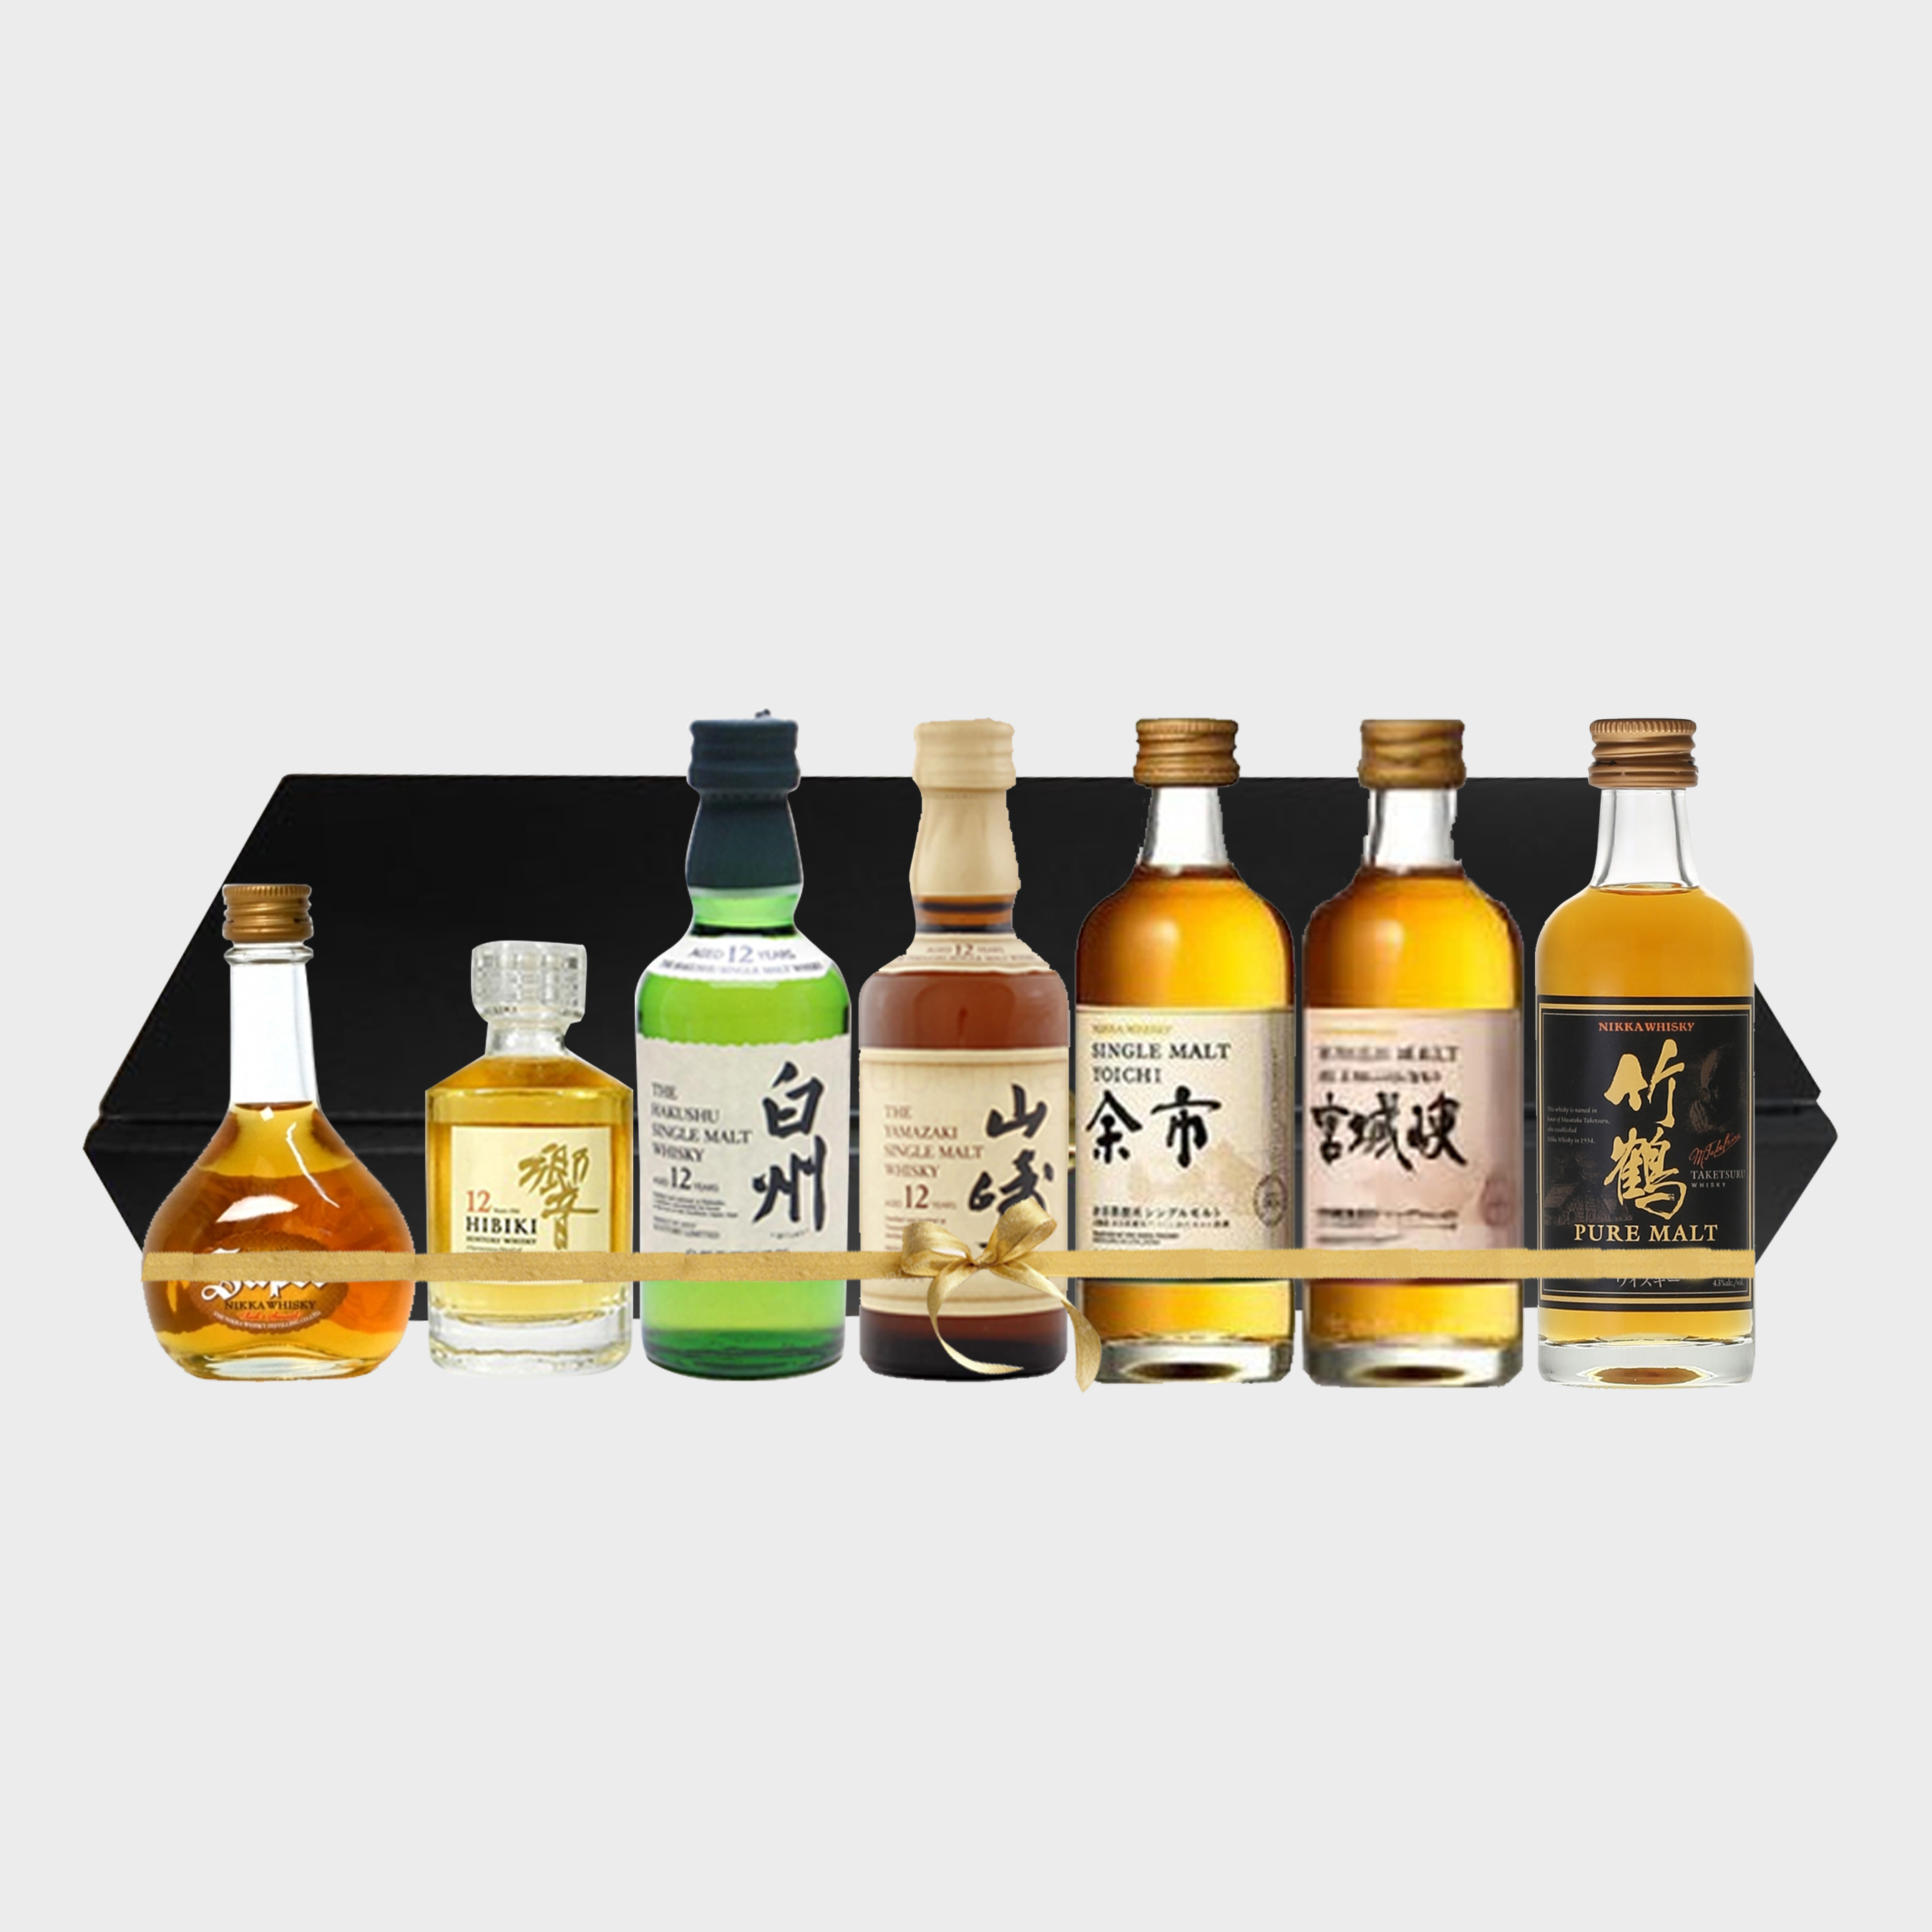 japanese whisky miniature gift set 7 bottles japanese whisky dekant. Black Bedroom Furniture Sets. Home Design Ideas